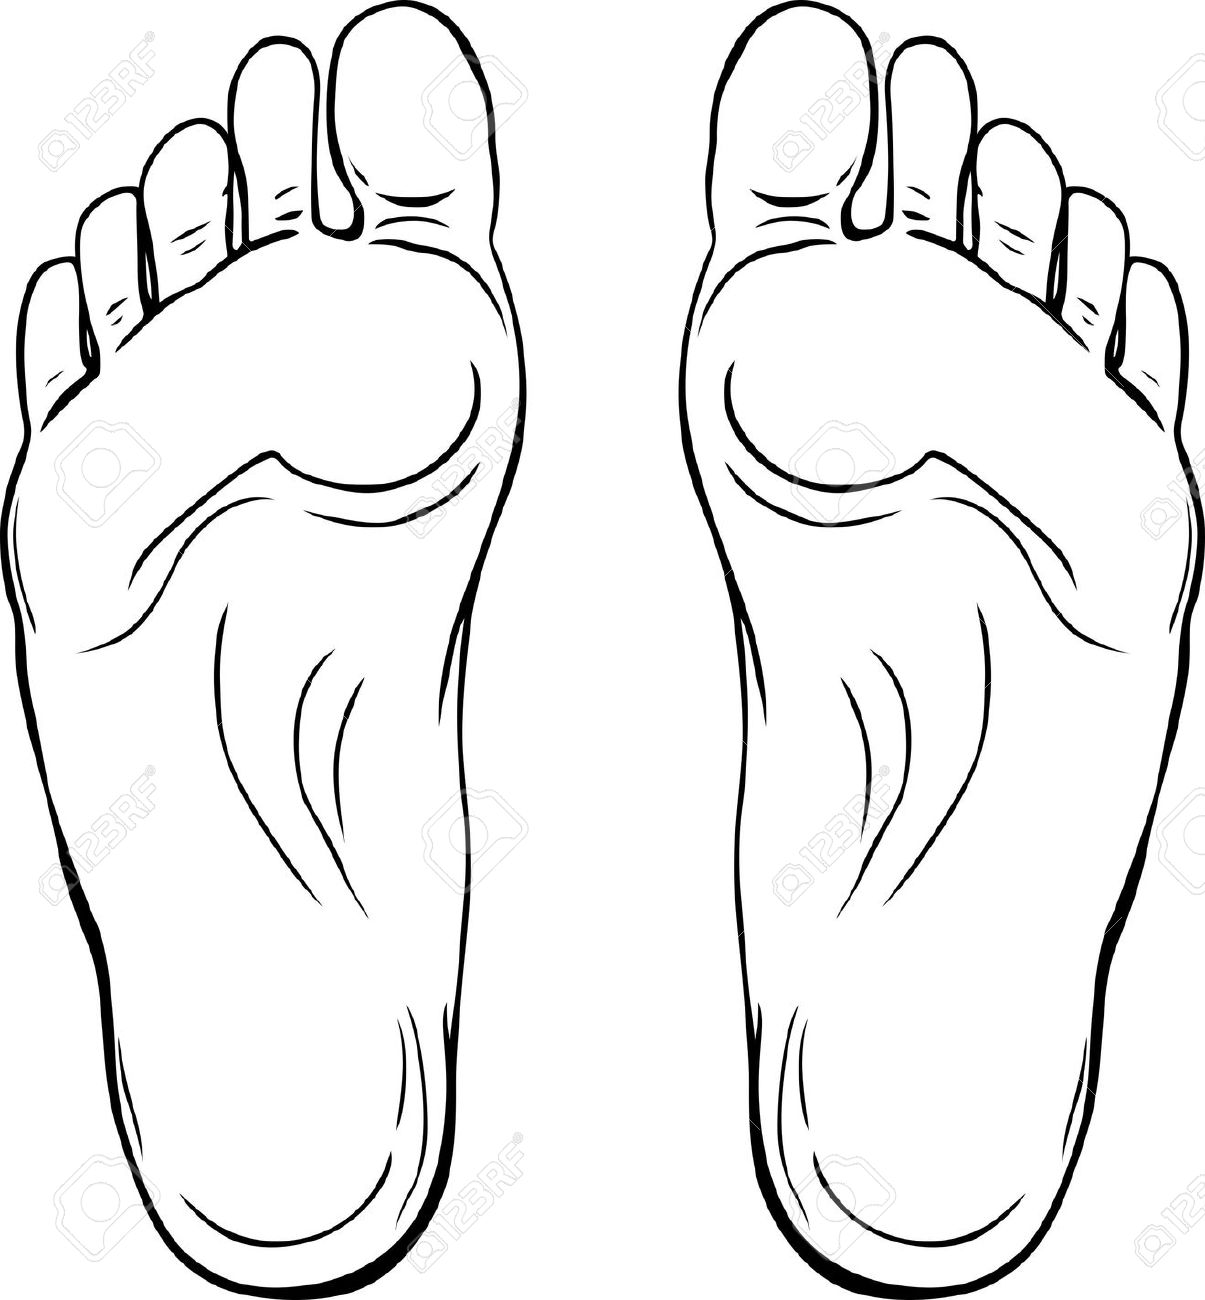 Feet clipart footprint outline Foot Of Images Clipartwork Free